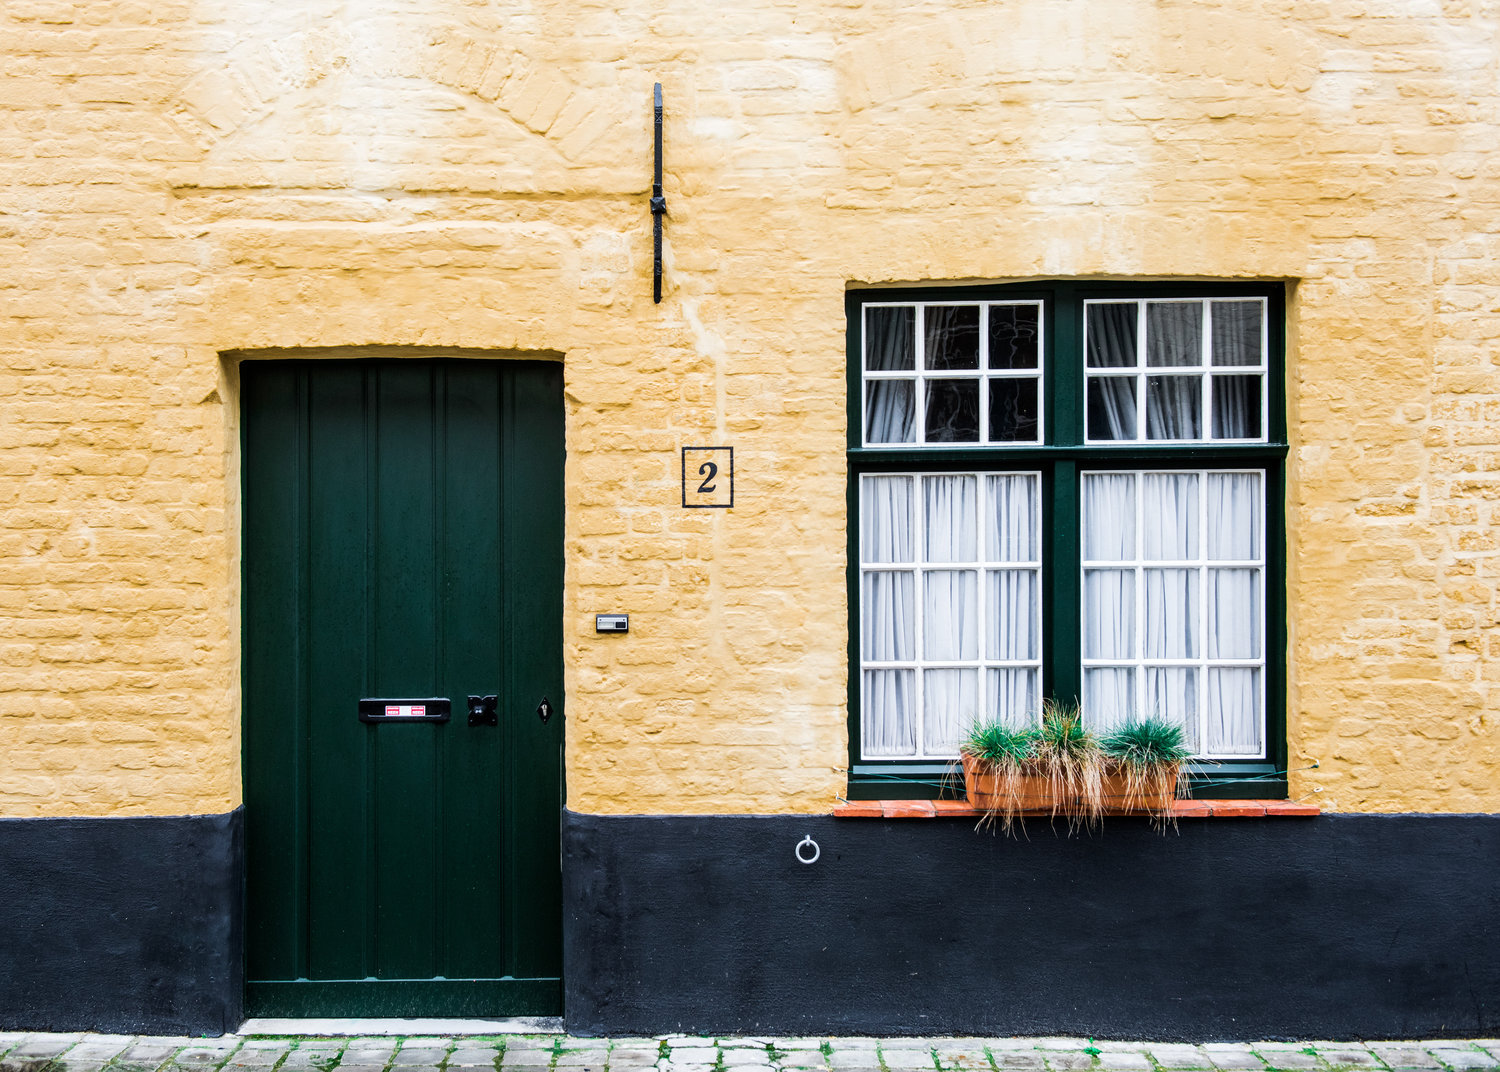 How to use the sharing economy when moving house.